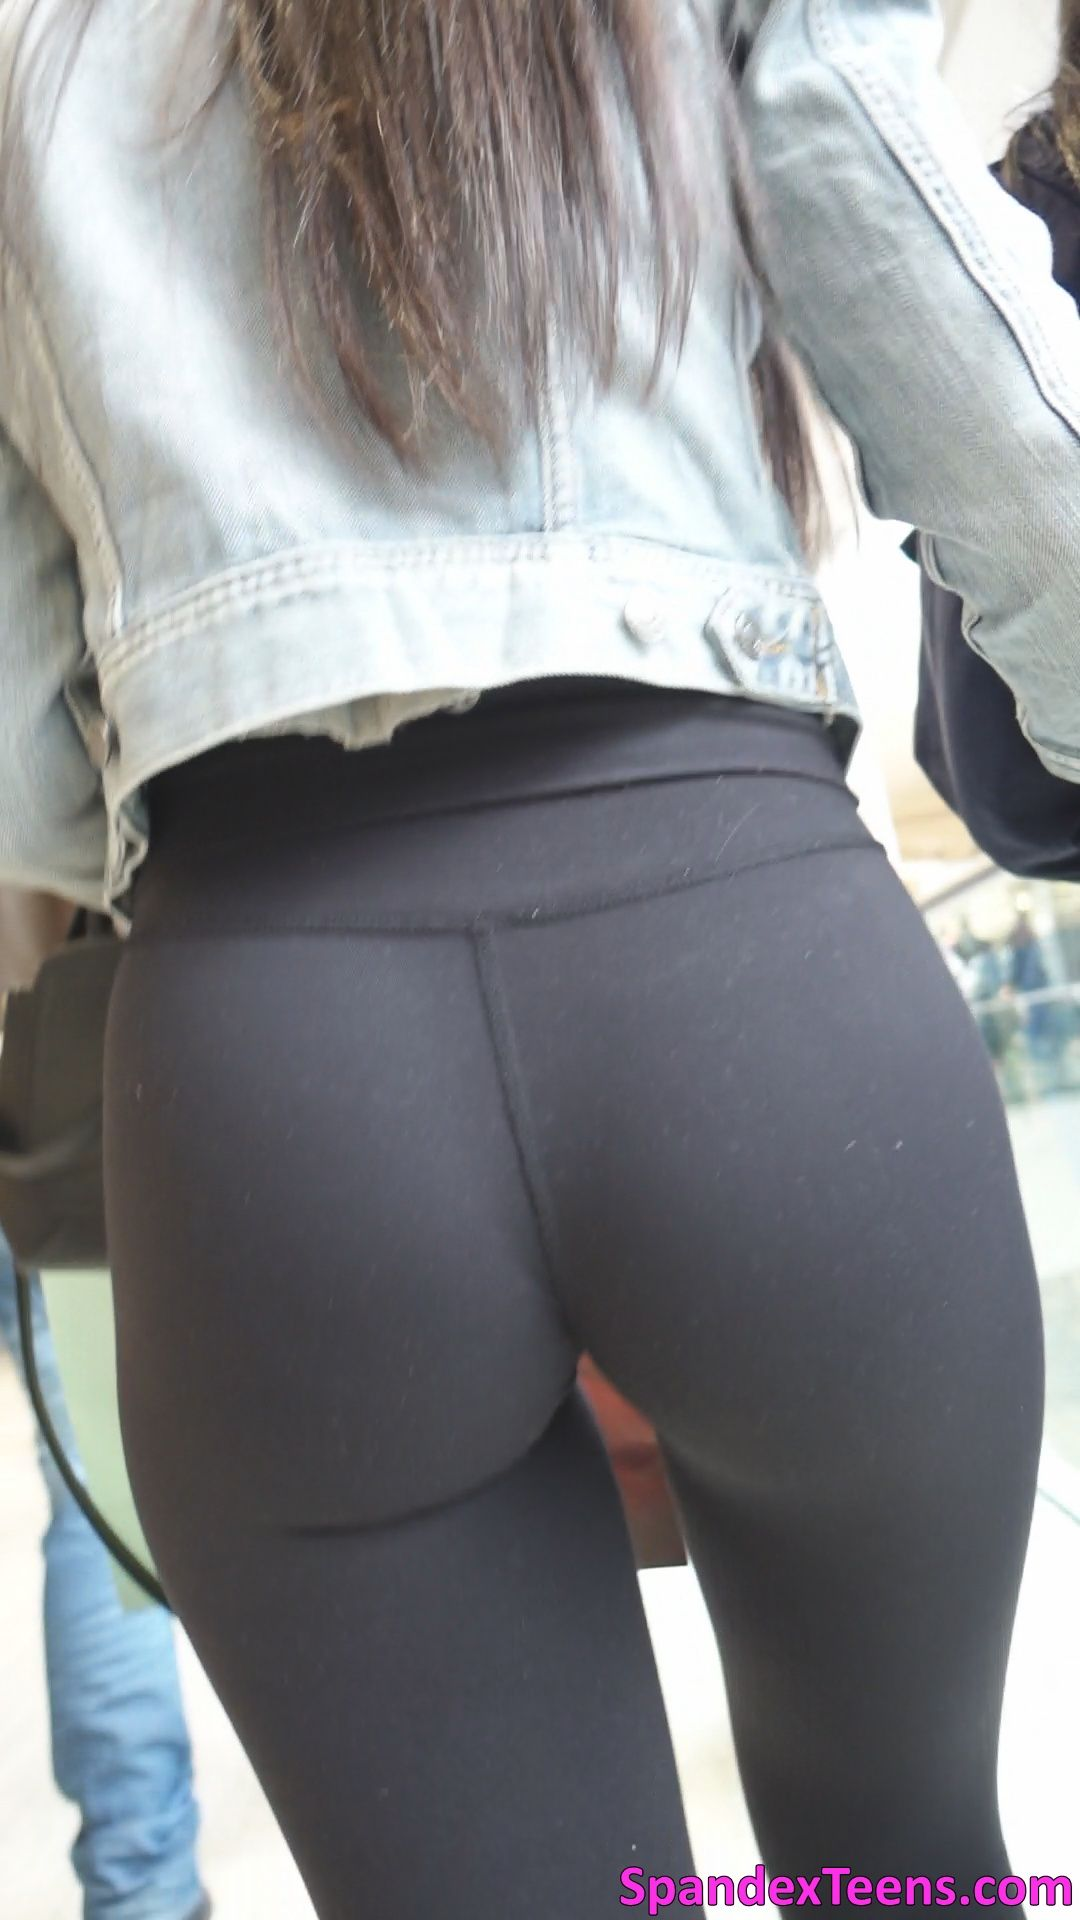 Spandex Teens Hd Candid Videos Page 6 Tight Pants In Cloudy